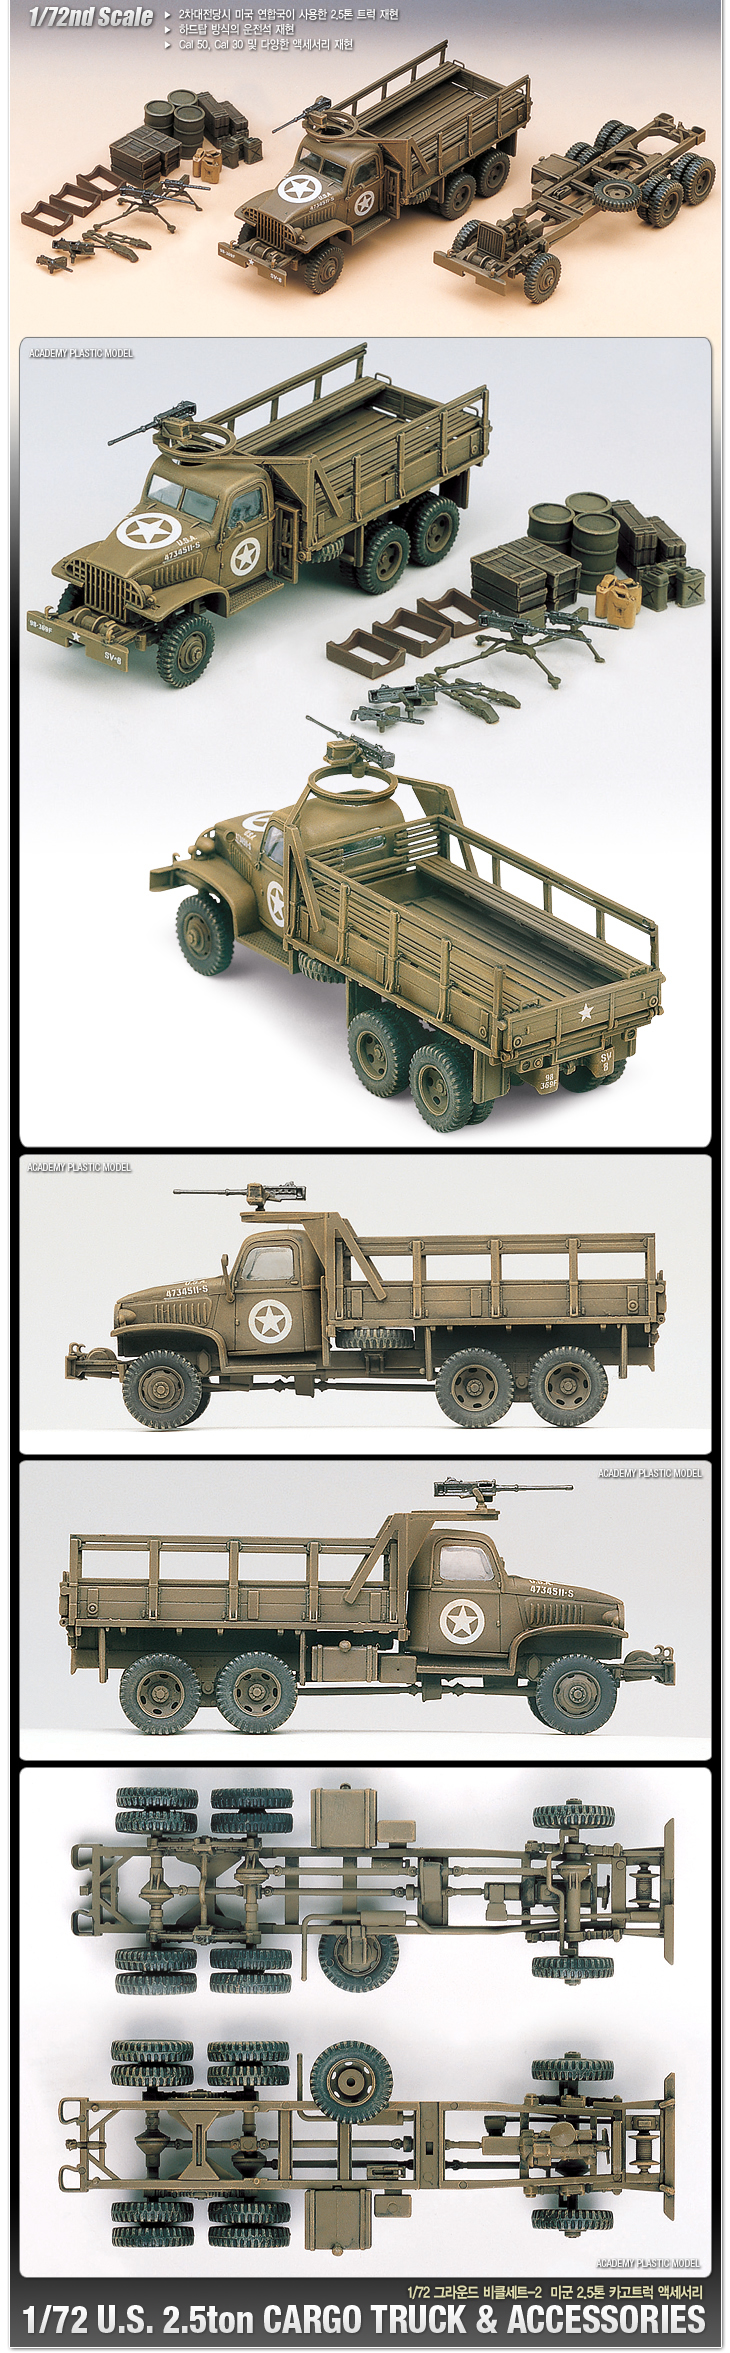 Academy 1/72 WWII US 6x6 Cargo Truck and Accessories # 13402